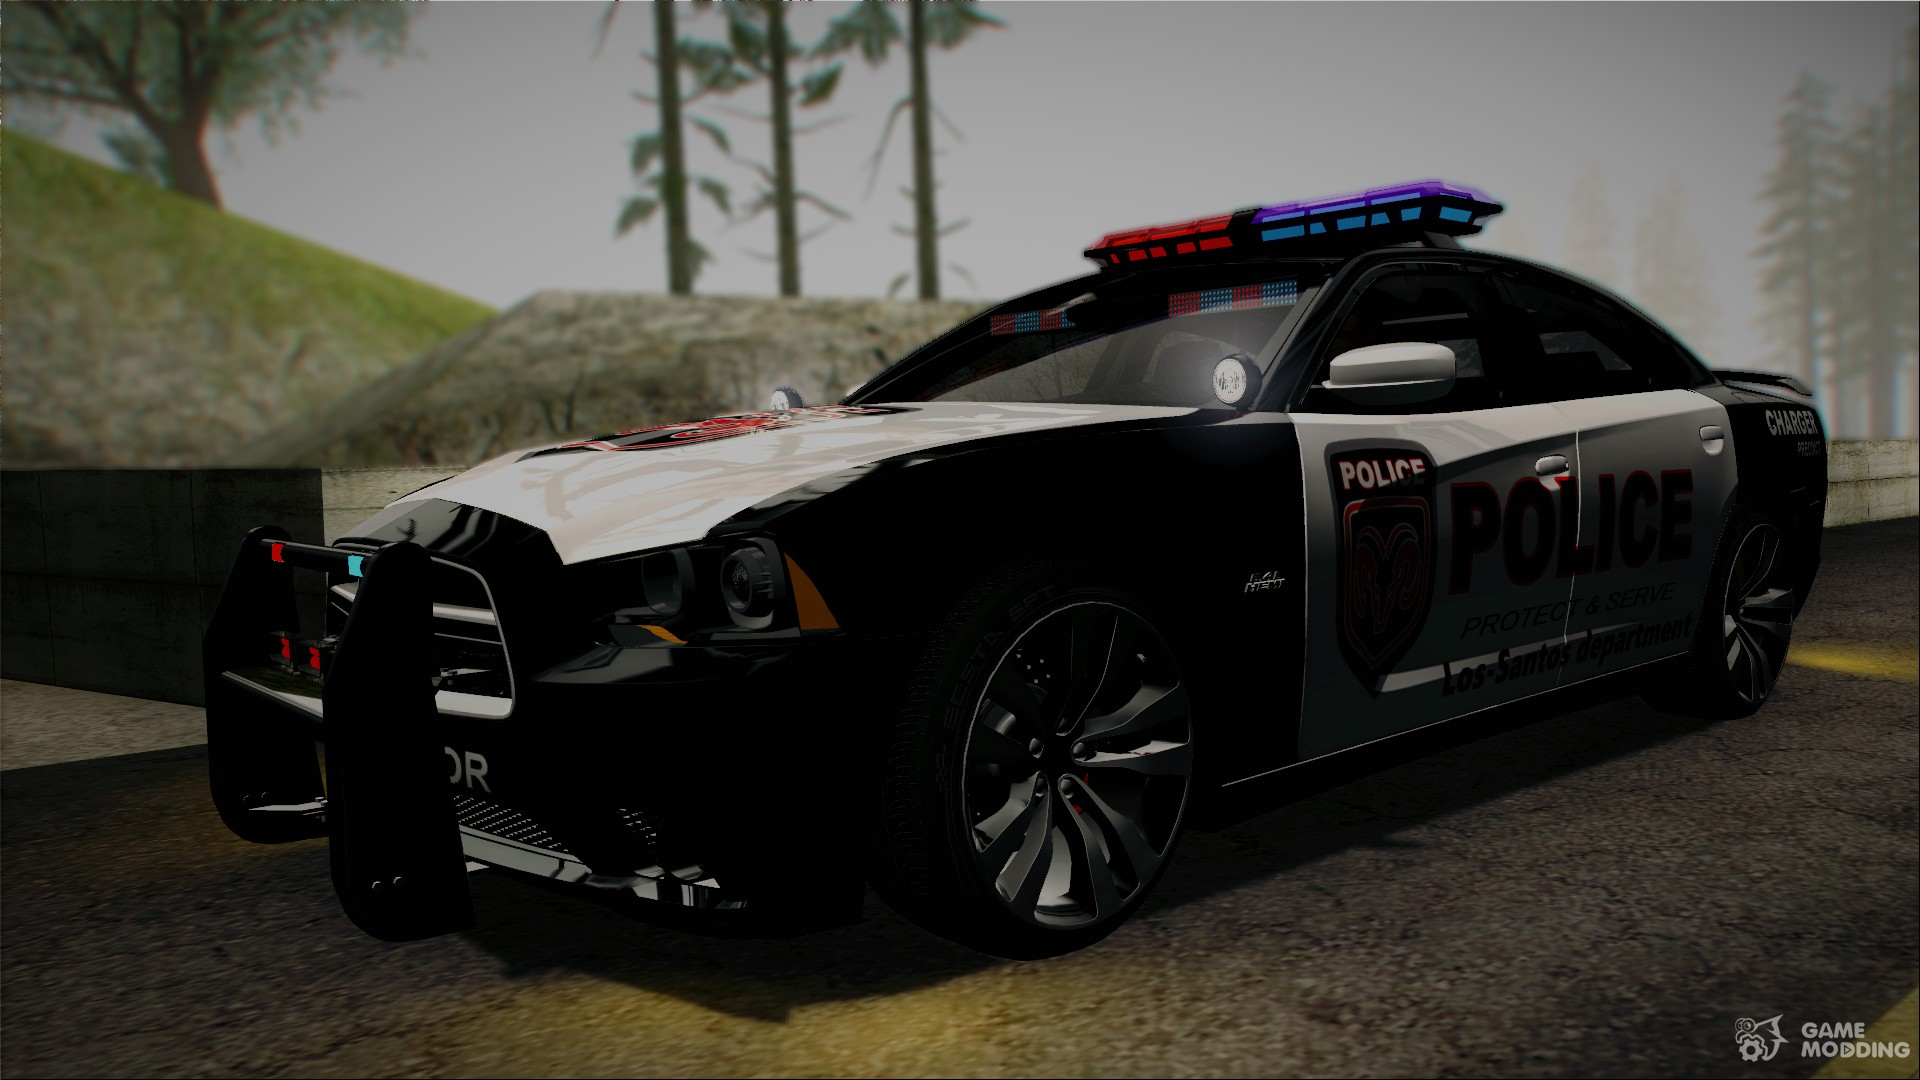 2012 dodge charger srt8 police interceptor lspd for gta san andreas. Black Bedroom Furniture Sets. Home Design Ideas